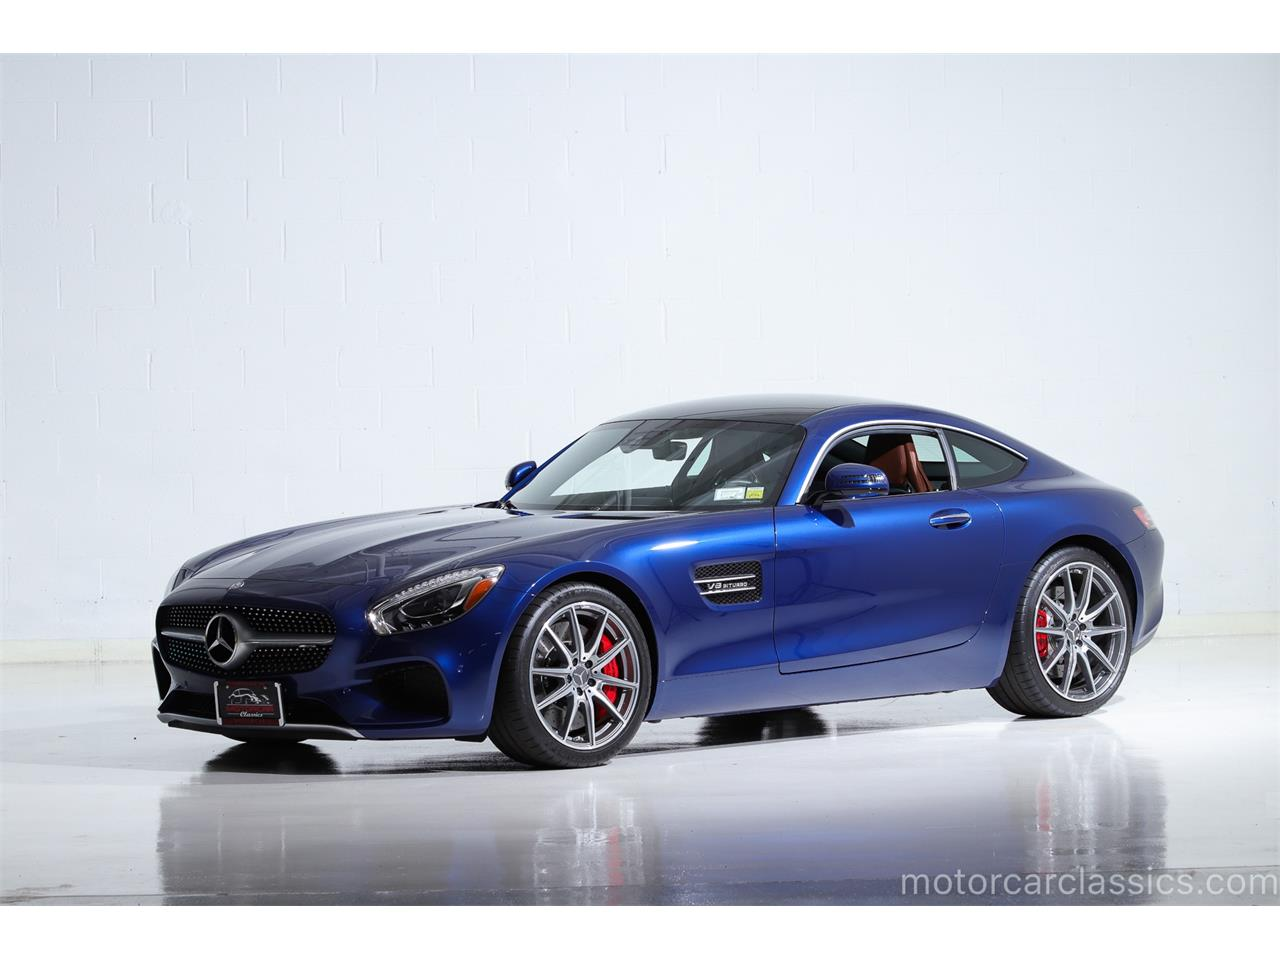 Large Picture of '16 Mercedes-Benz AMG located in New York - $89,900.00 - R1ZW